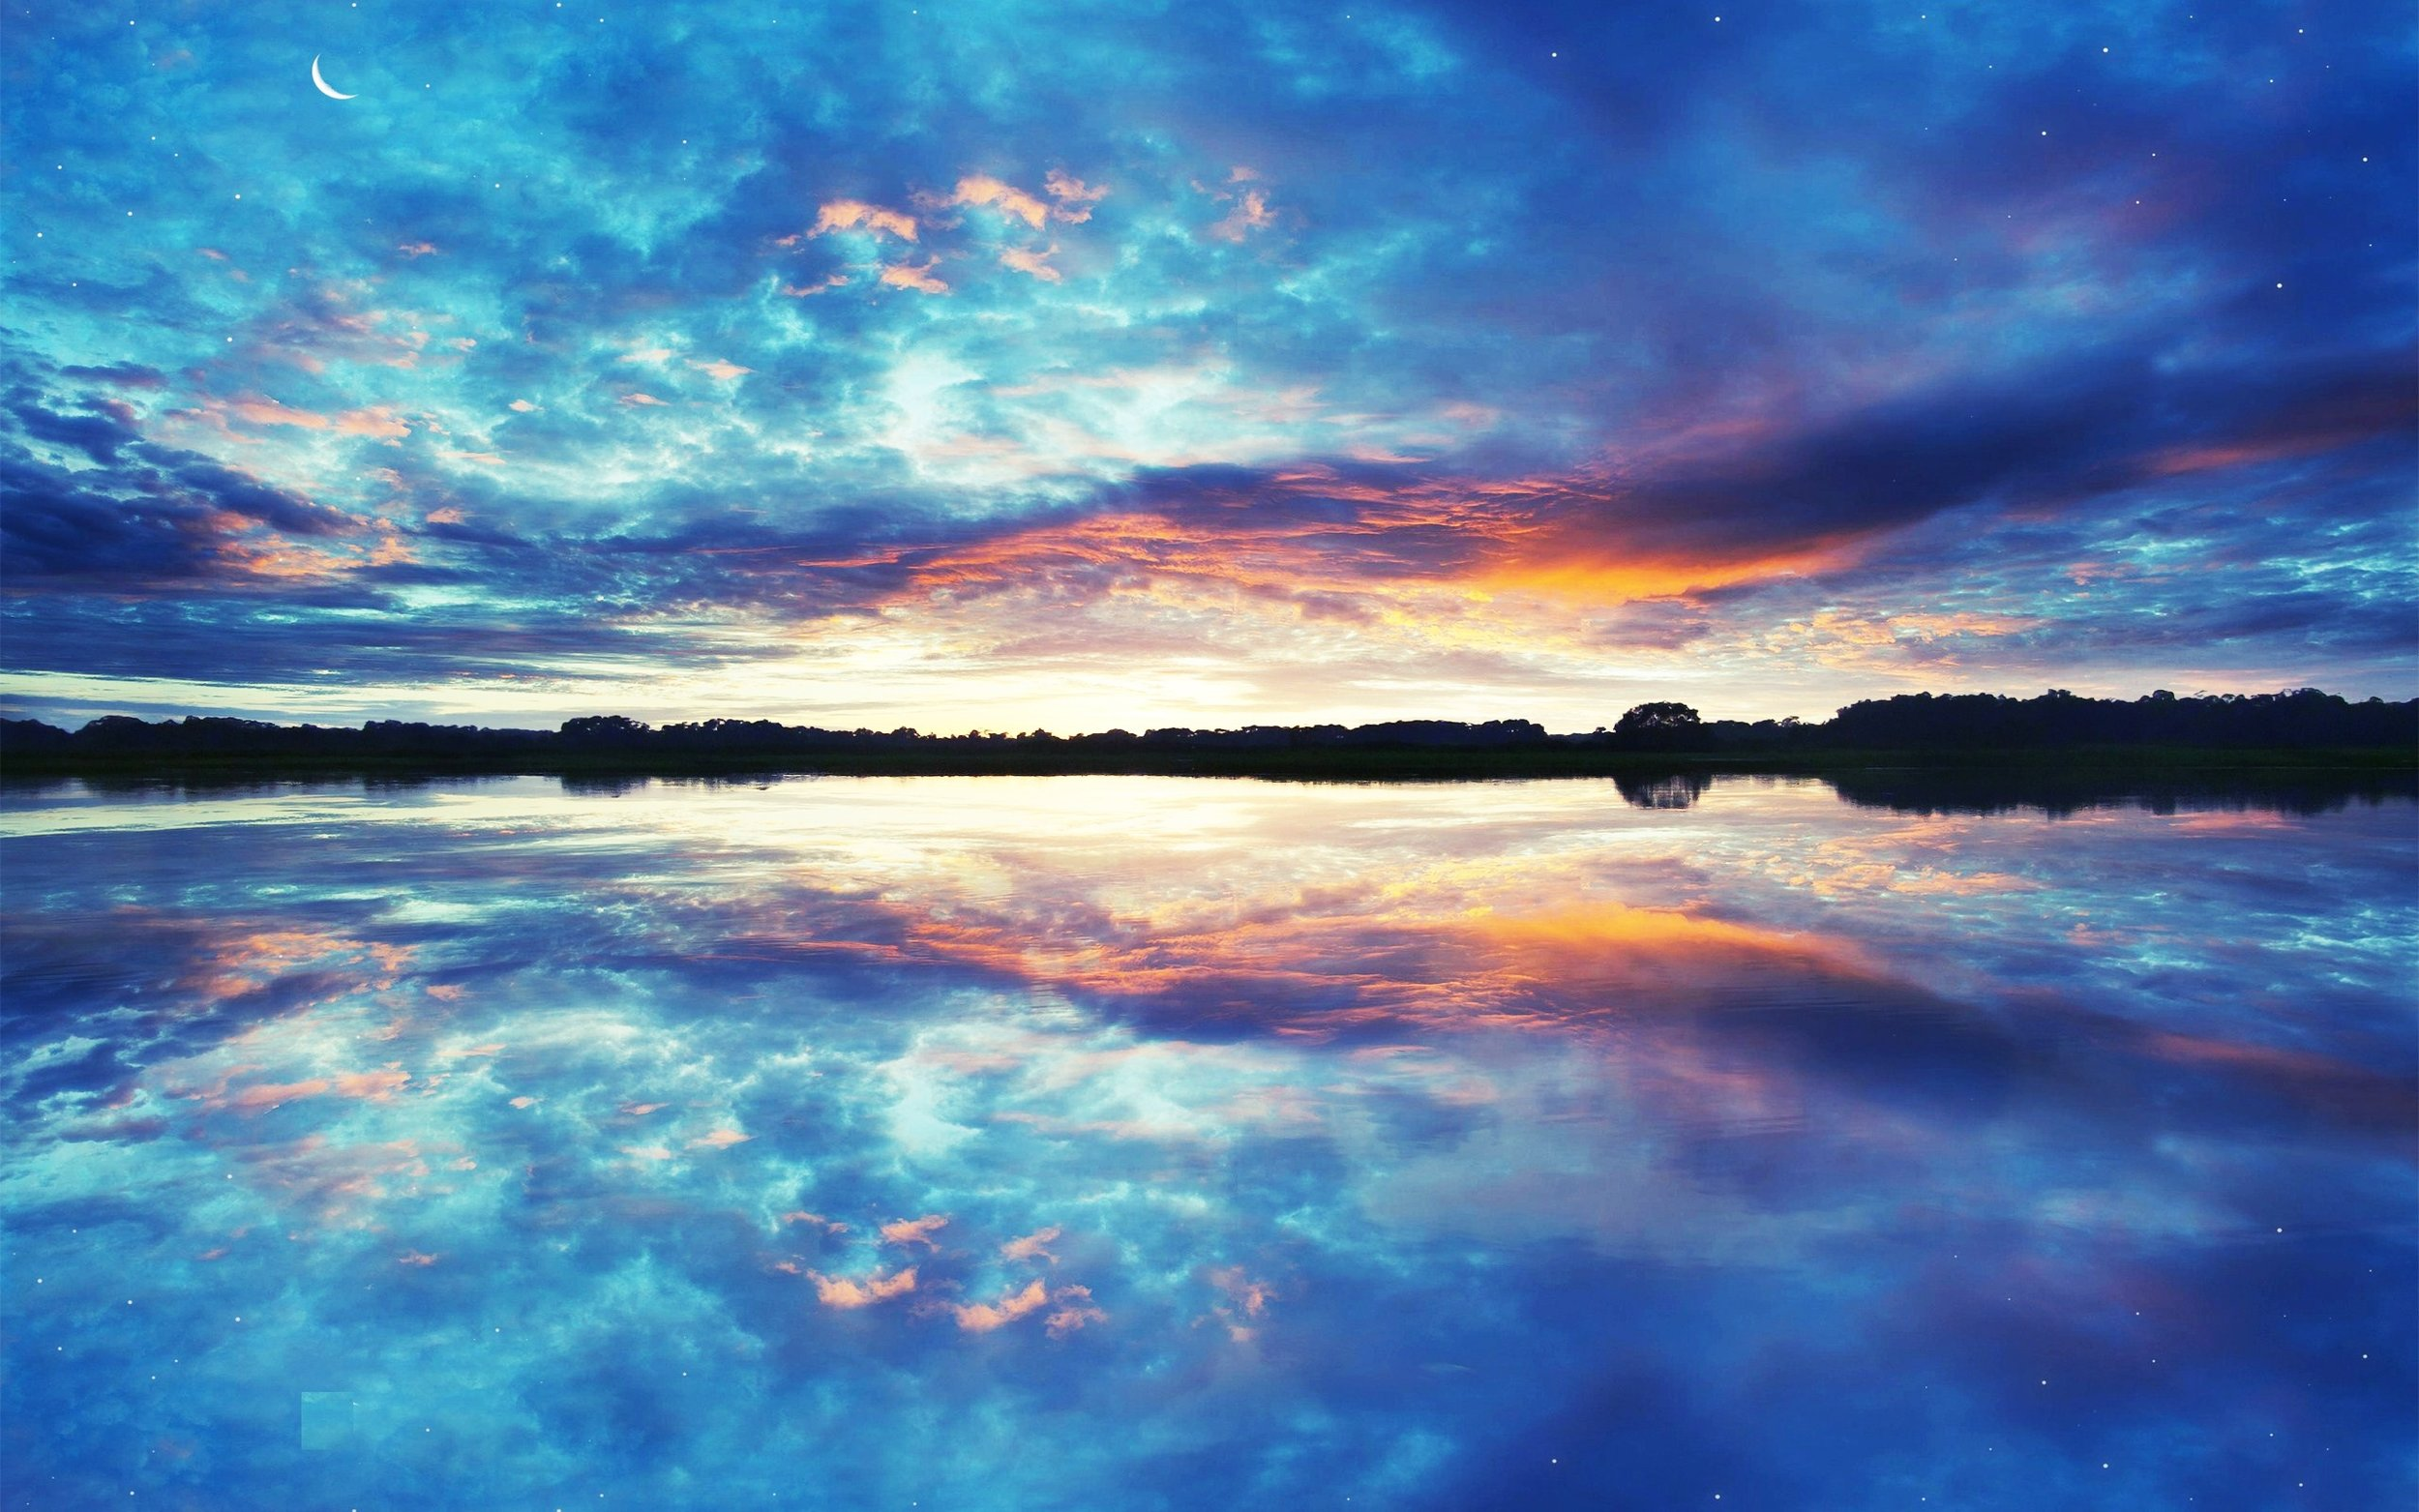 allswalls-lakeside-sunset-reflection.jpg